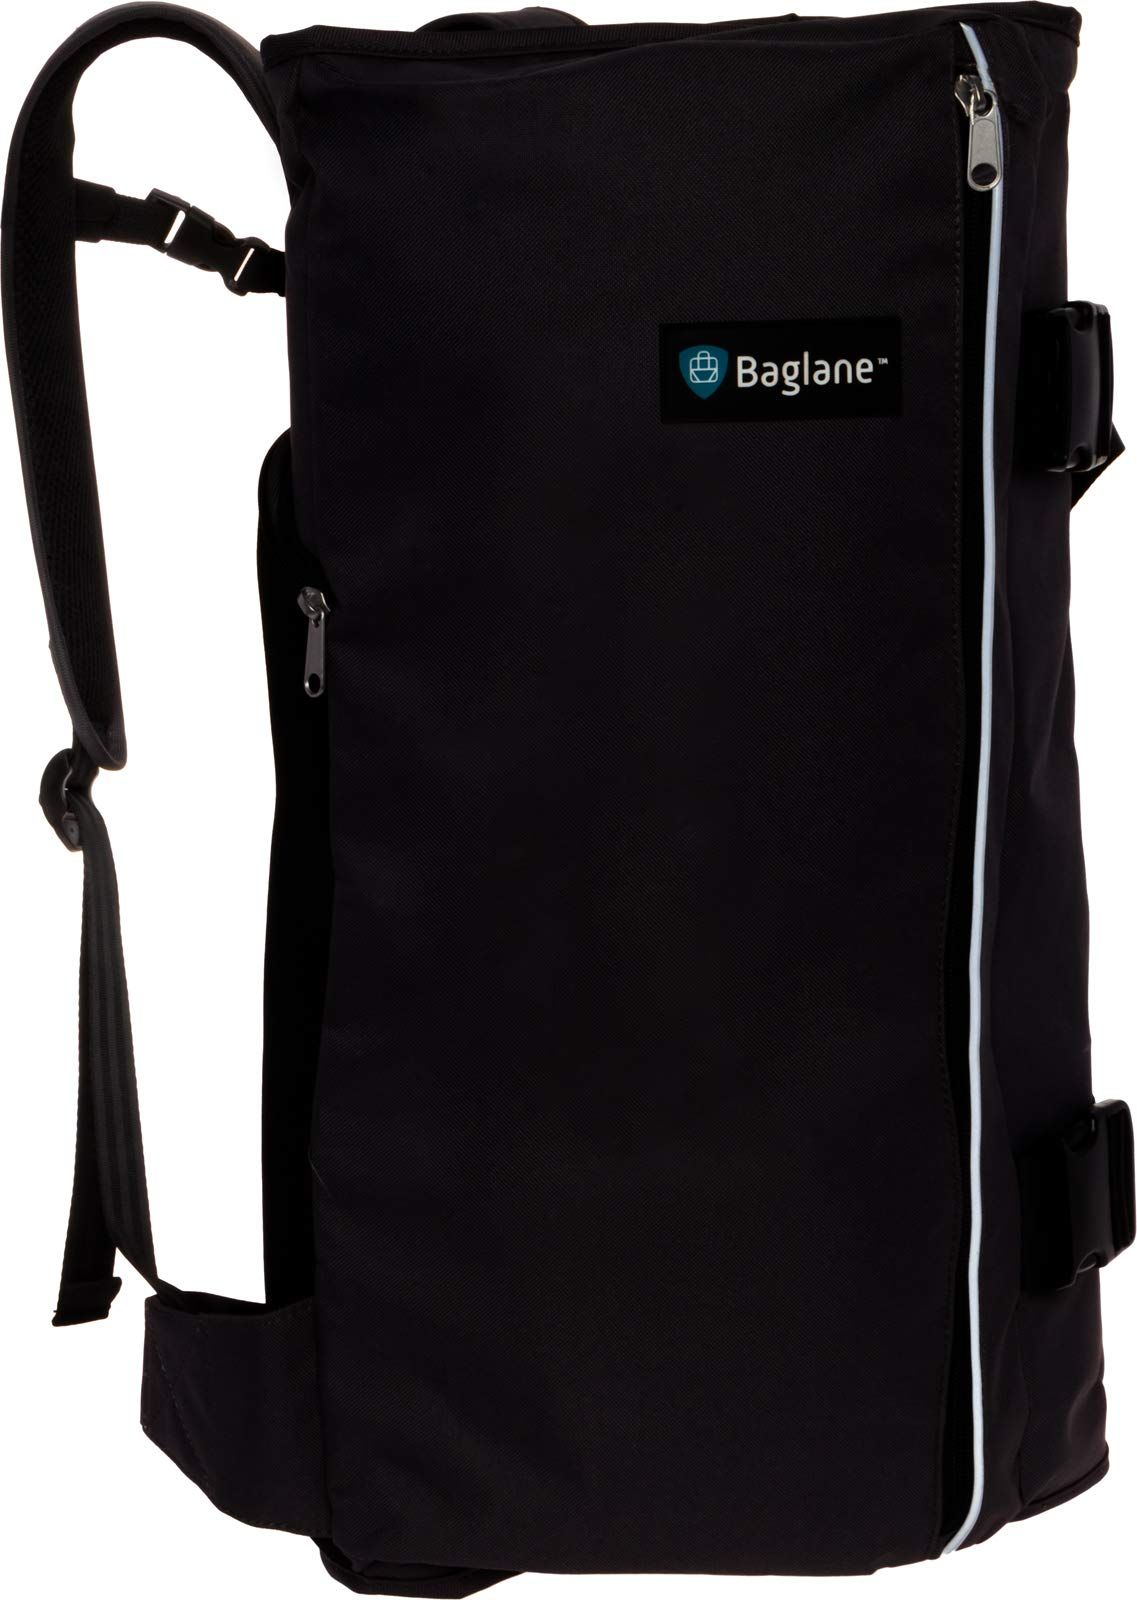 d9157e8a3c BagLane Hybrid Commuter Backpack Garment Bag - Travel Carry On Suit Bag THE  ALL-IN